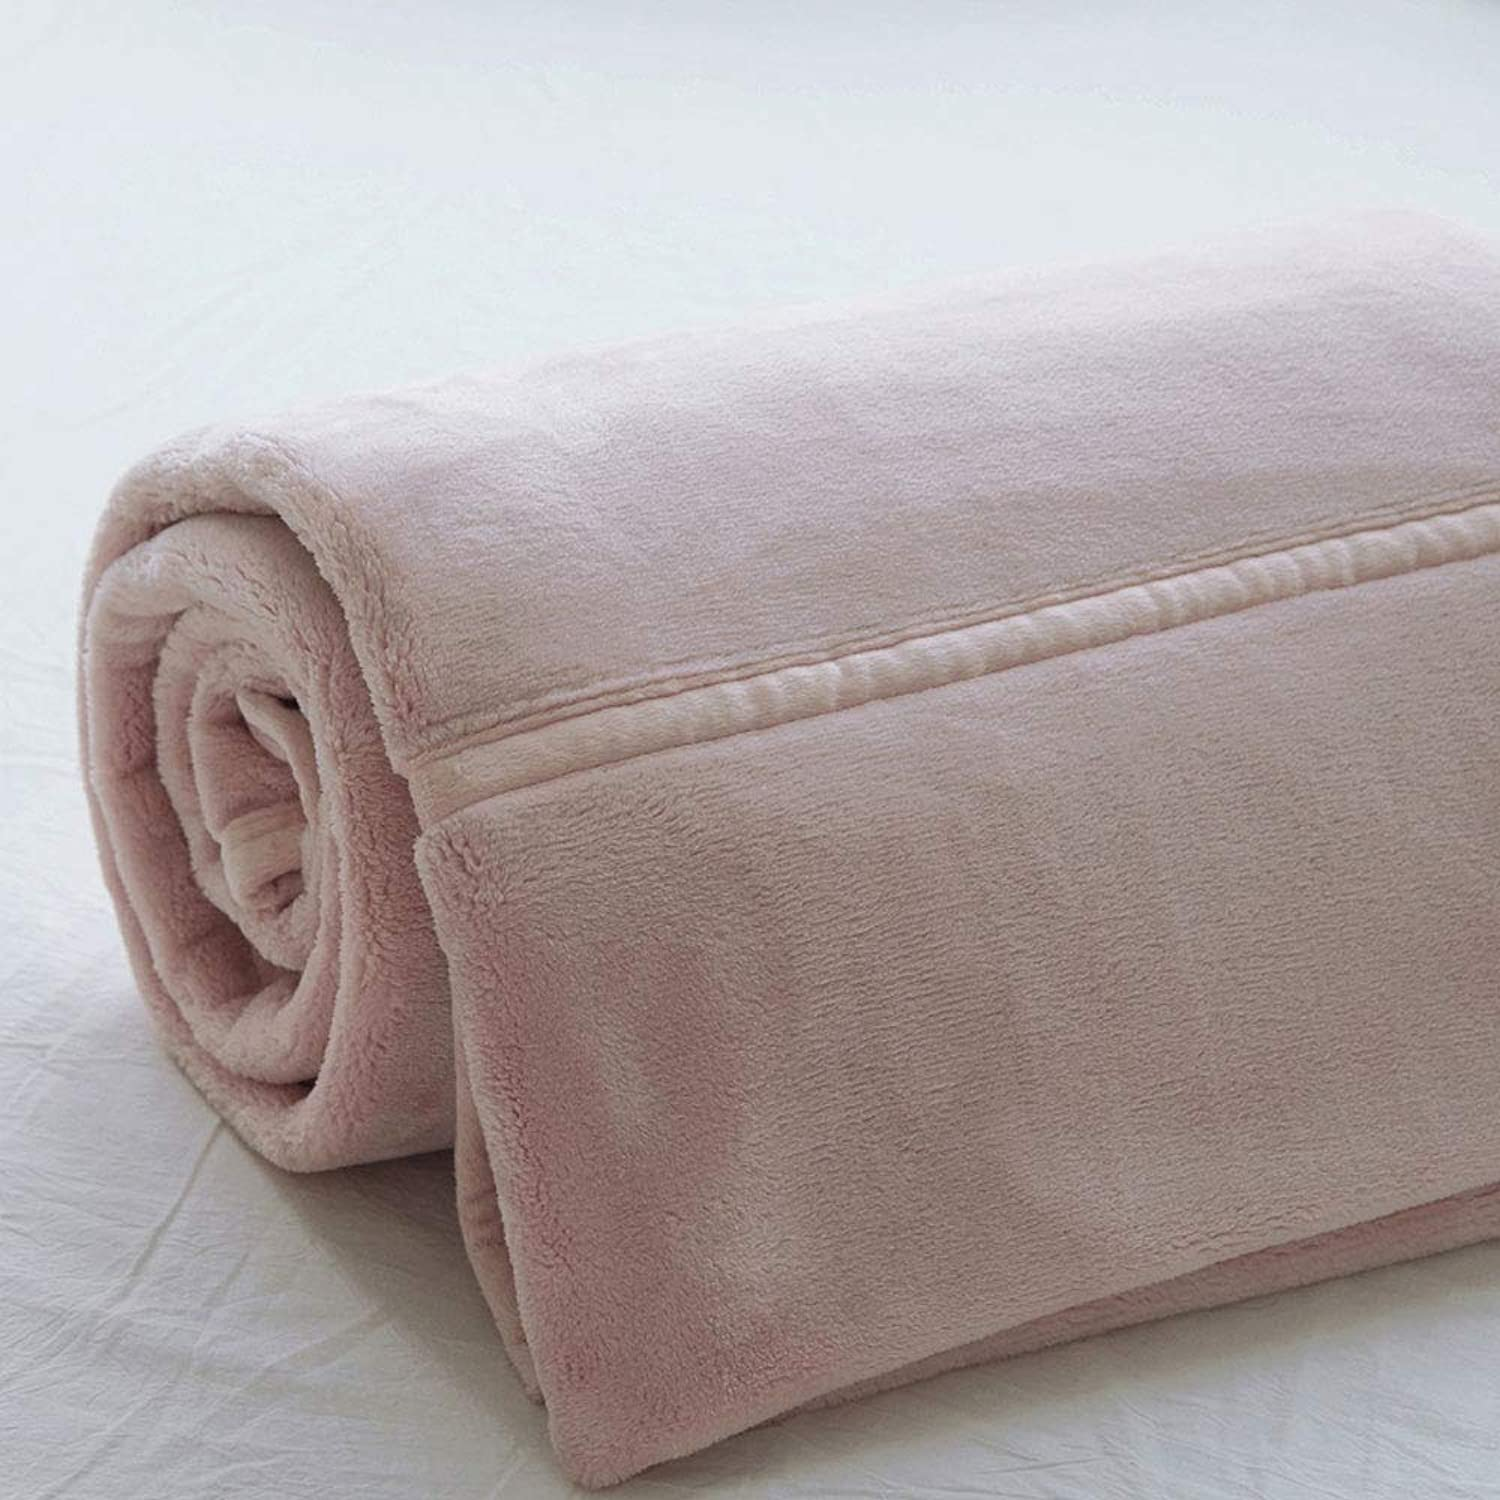 Autumn Winter Models Thickened Velvet blanket Single Simple Warm Solid color Double-Sided Coral Velvet Double Sofa blanket (color   Pink, Size   55.12  78.74)